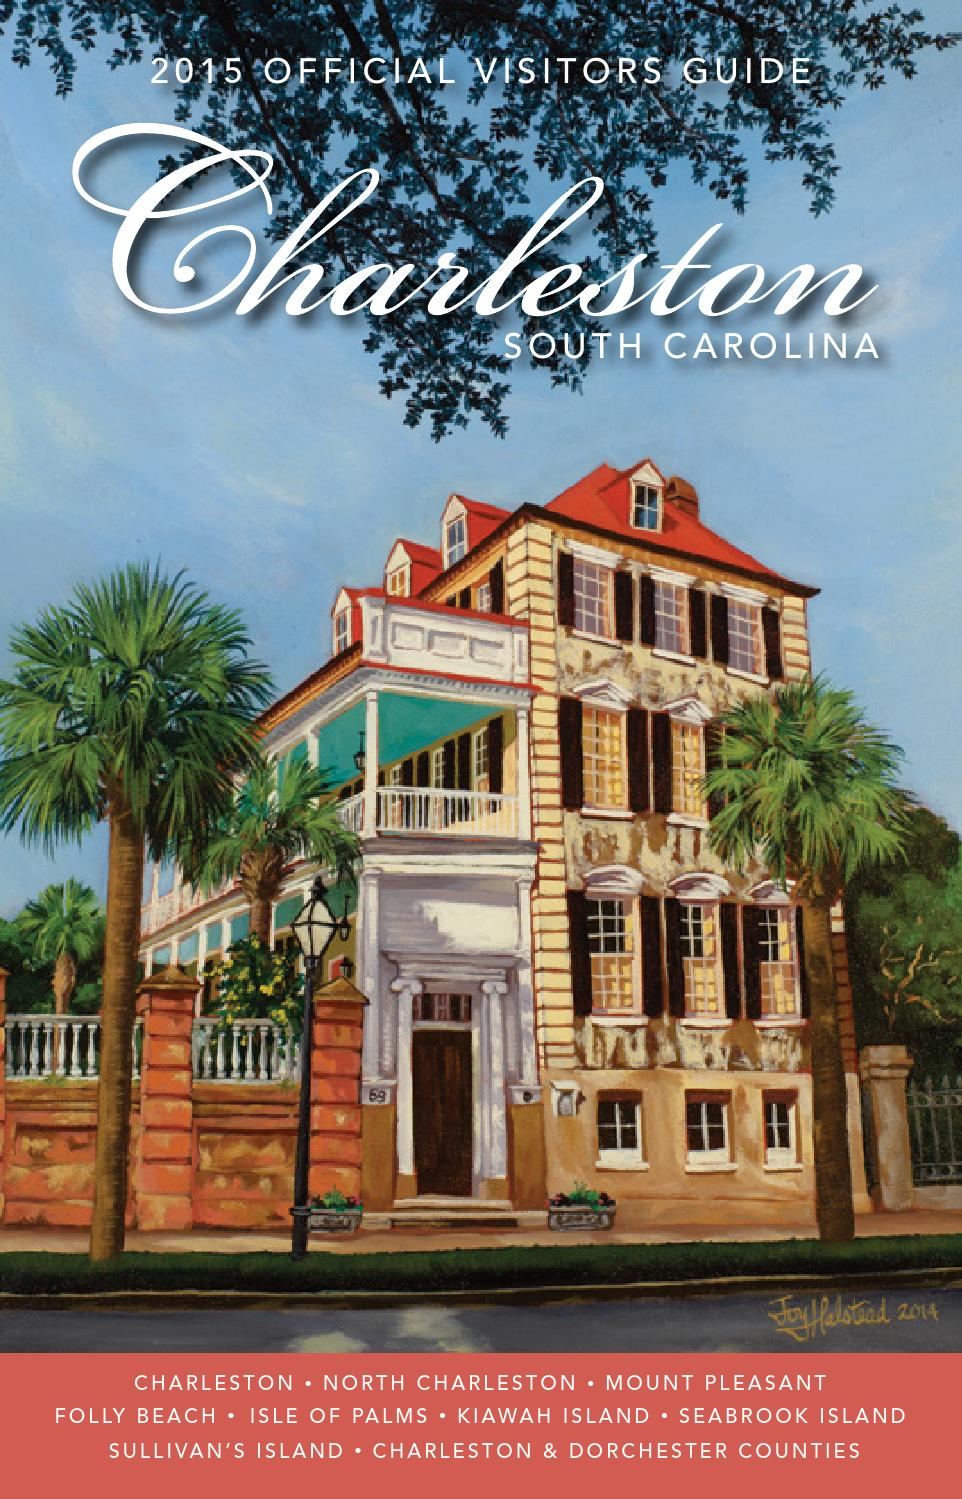 Official Charleston Area South Carolina Visitors Guide by Explore Charleston  - issuu